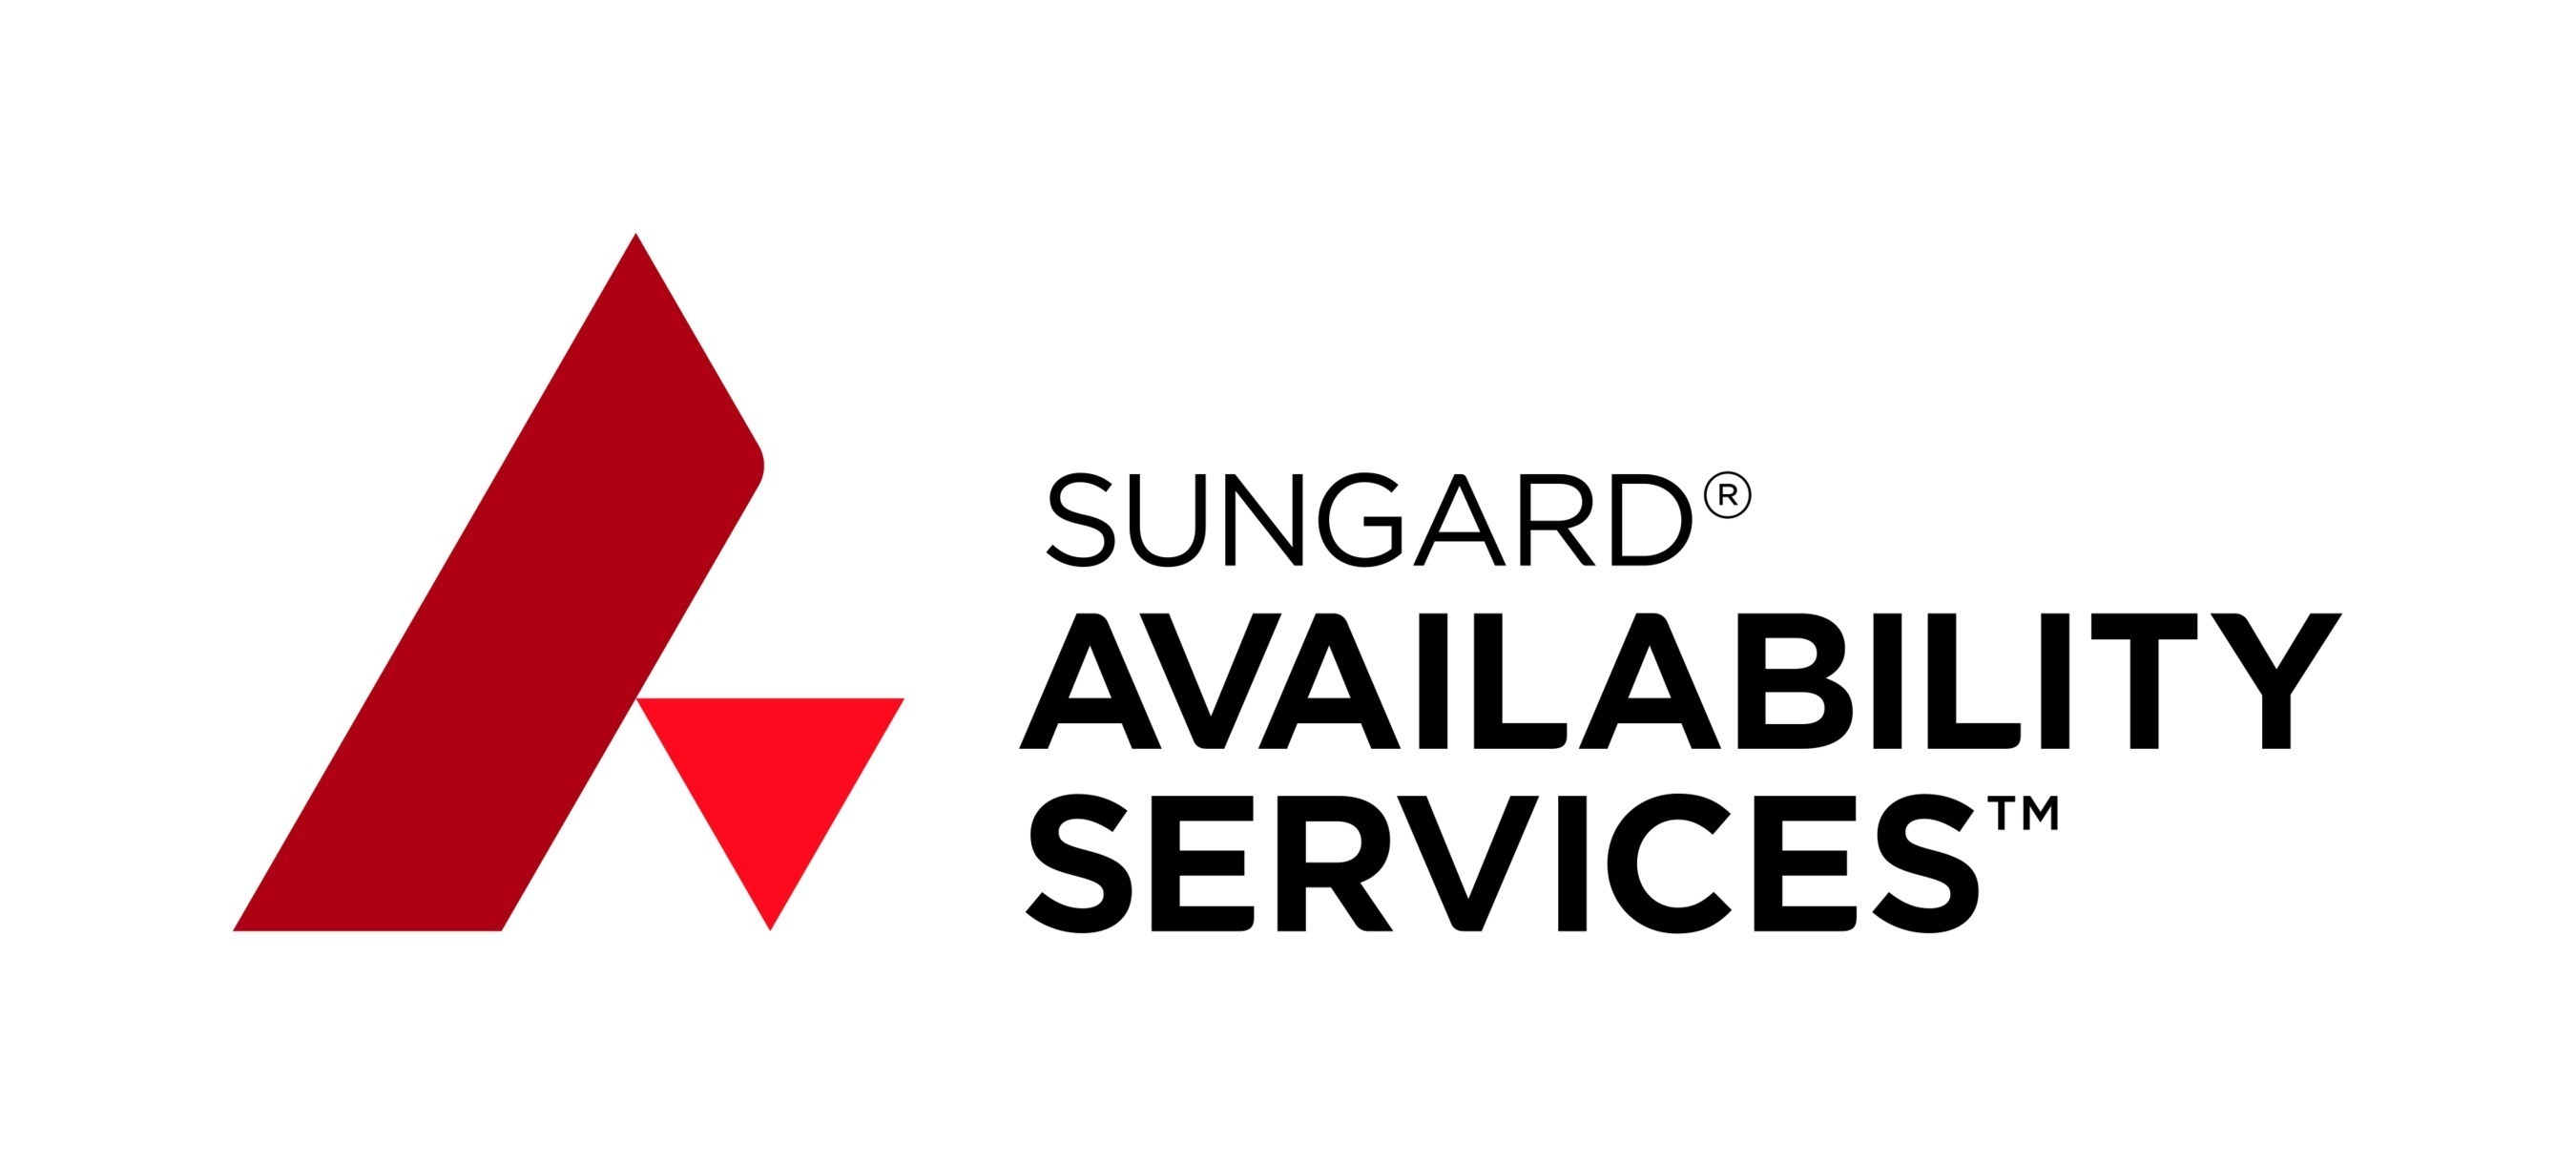 Sungard Availability Services logo.